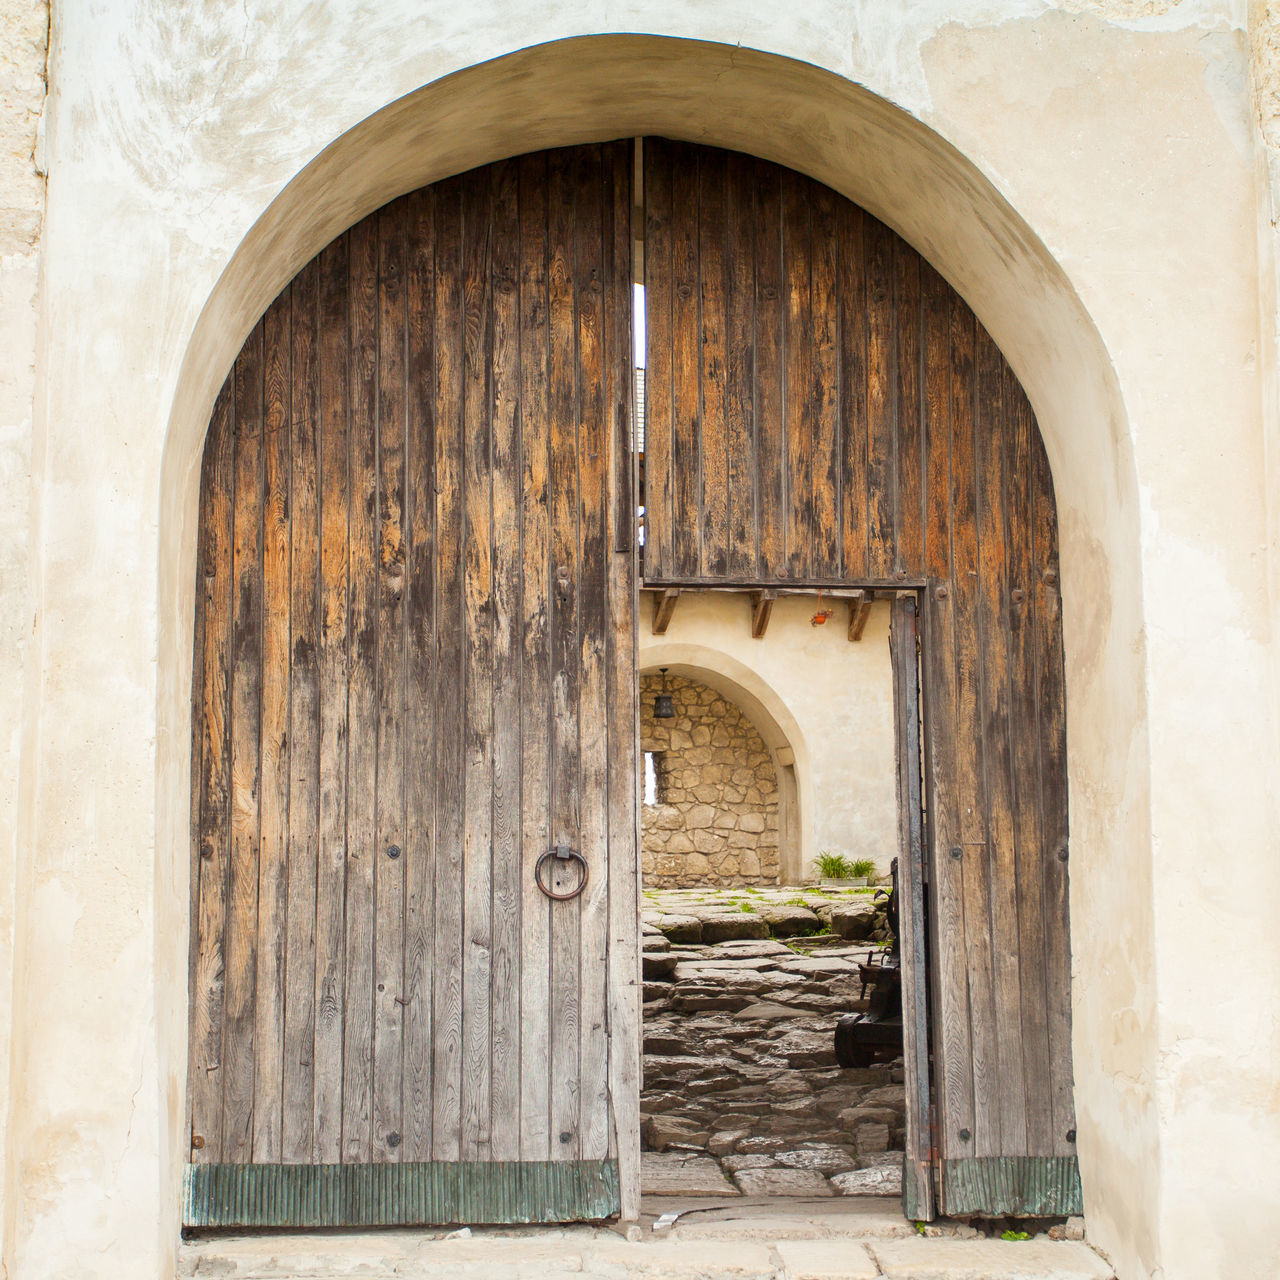 An old opened wooden door with hinge and rough texture Ancient Antique Arch Architecture Brown Building Exterior Built Structure Day Door Entrance Entrance Facade Building Gates House No People Outdoors Retro Ruin Rustic Vintage Wood - Material